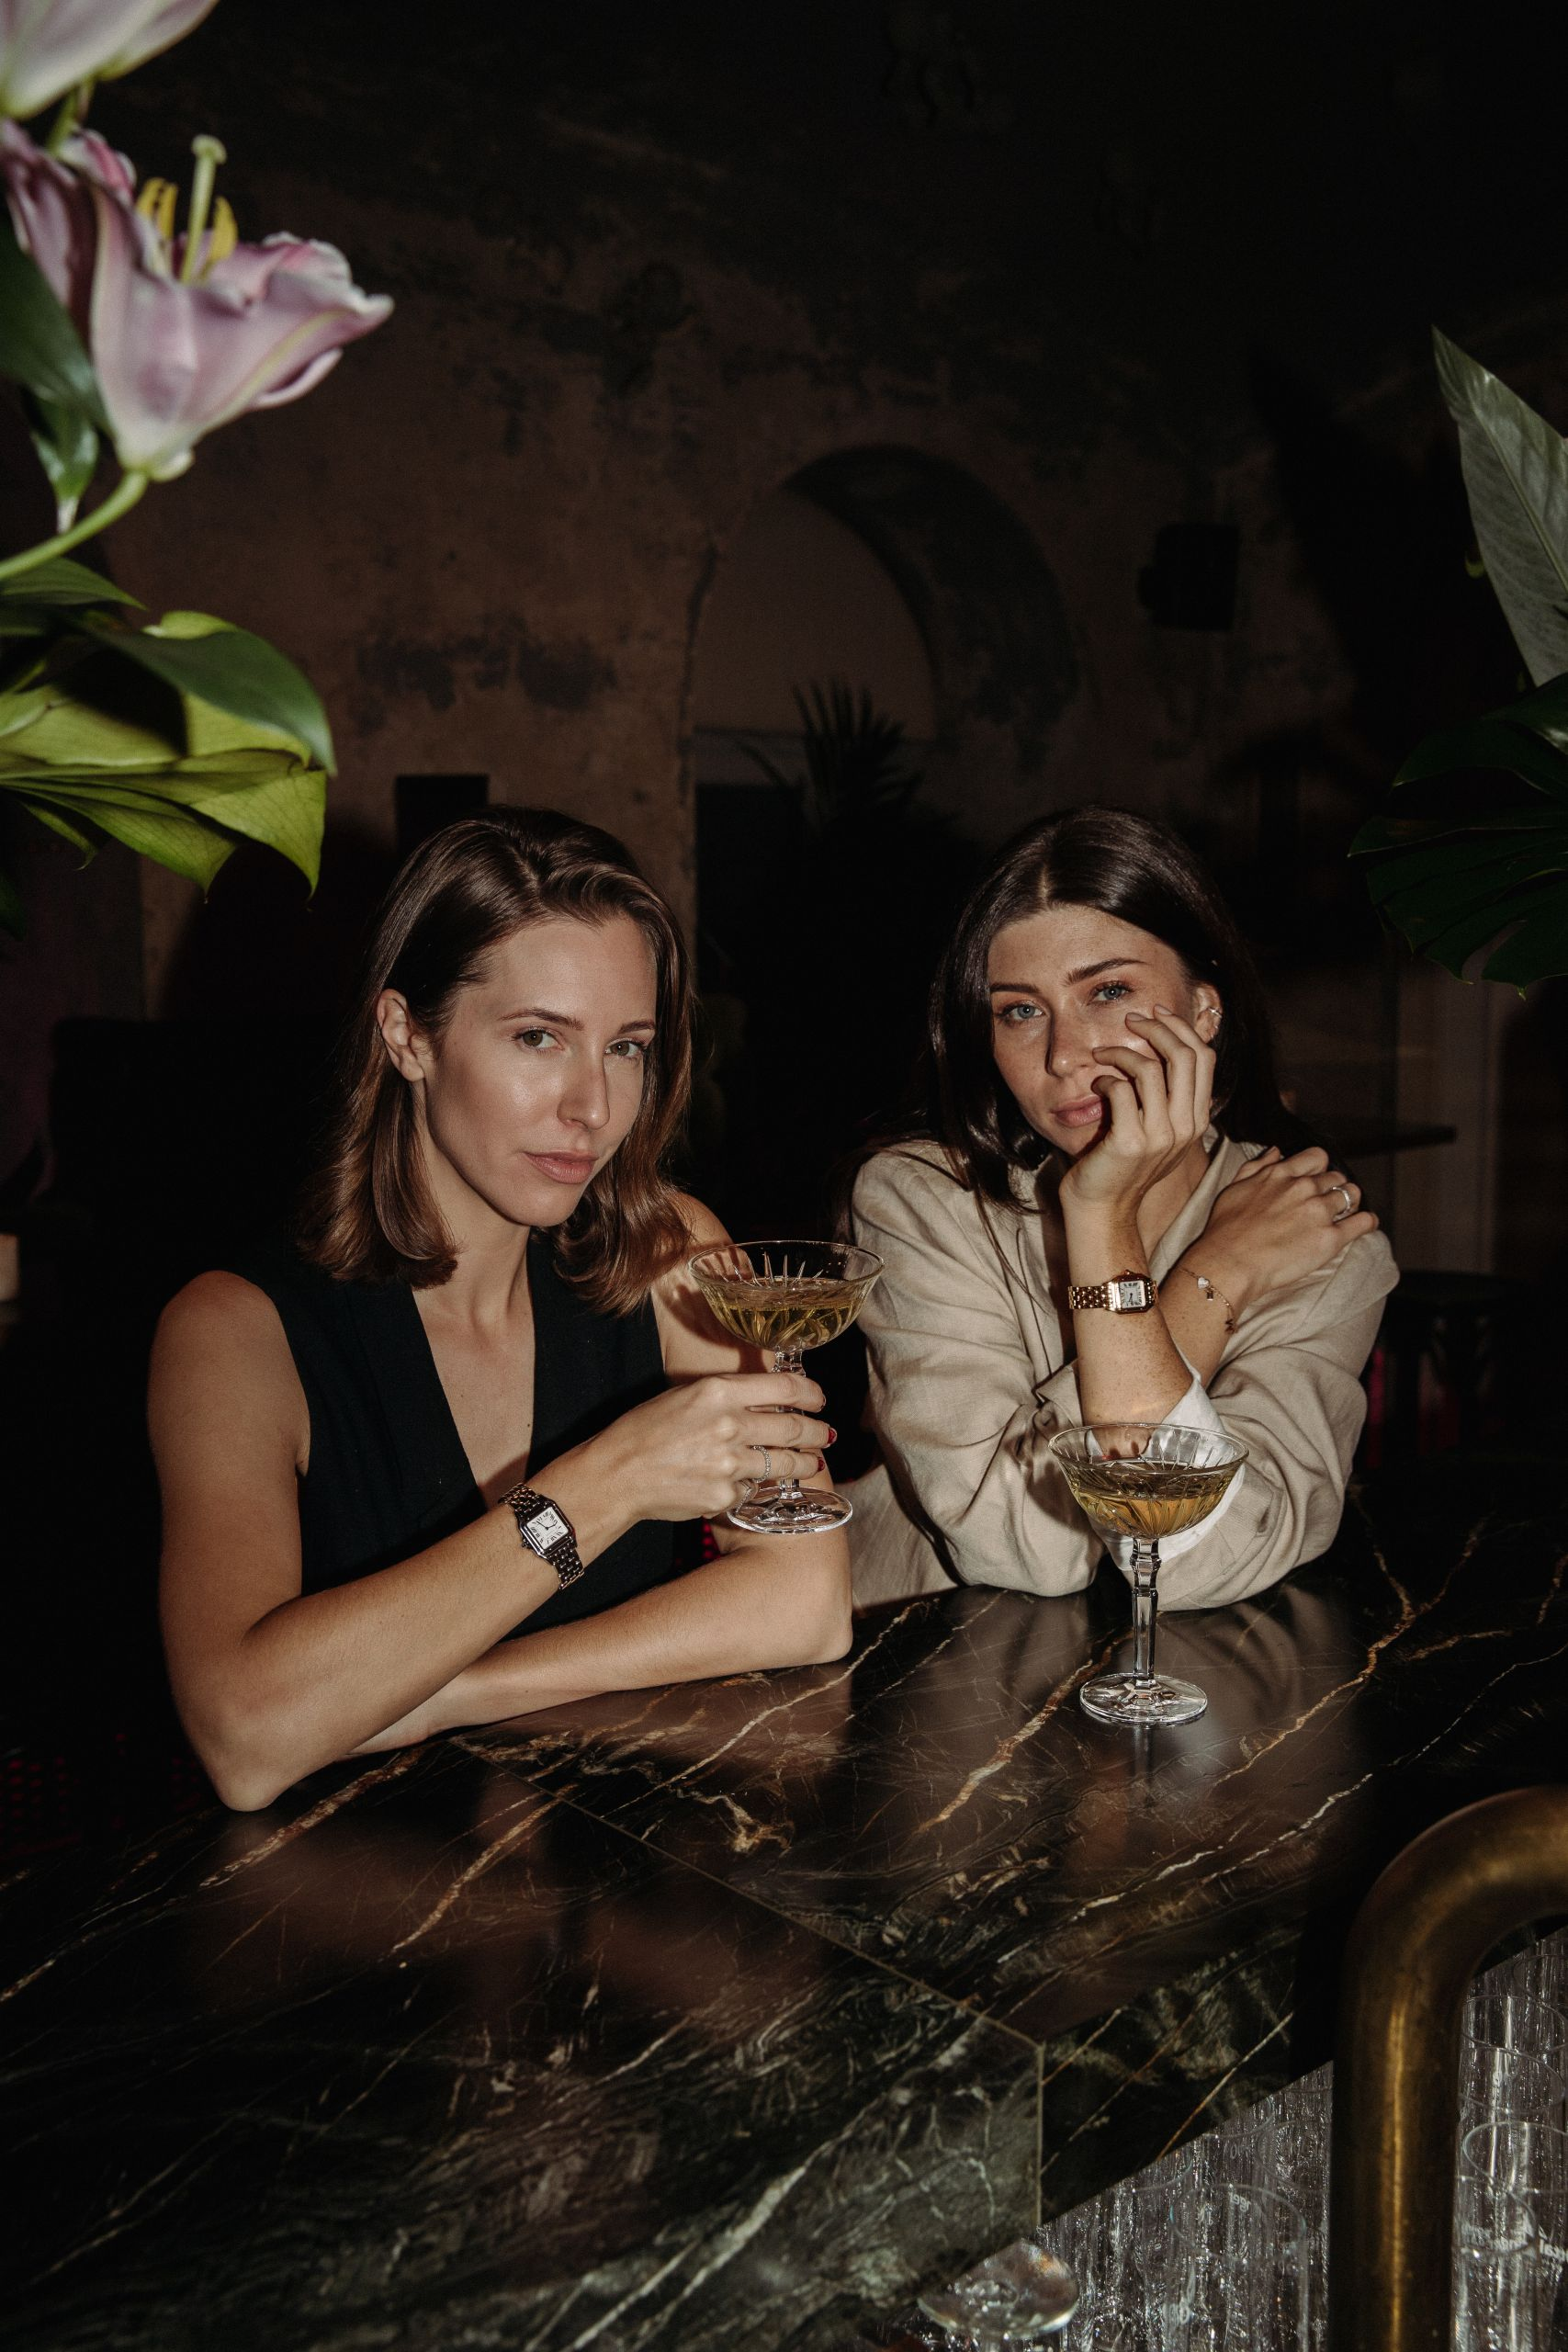 Vienna By Night: Unsere Hotspots in Wien - Love Daily Dose